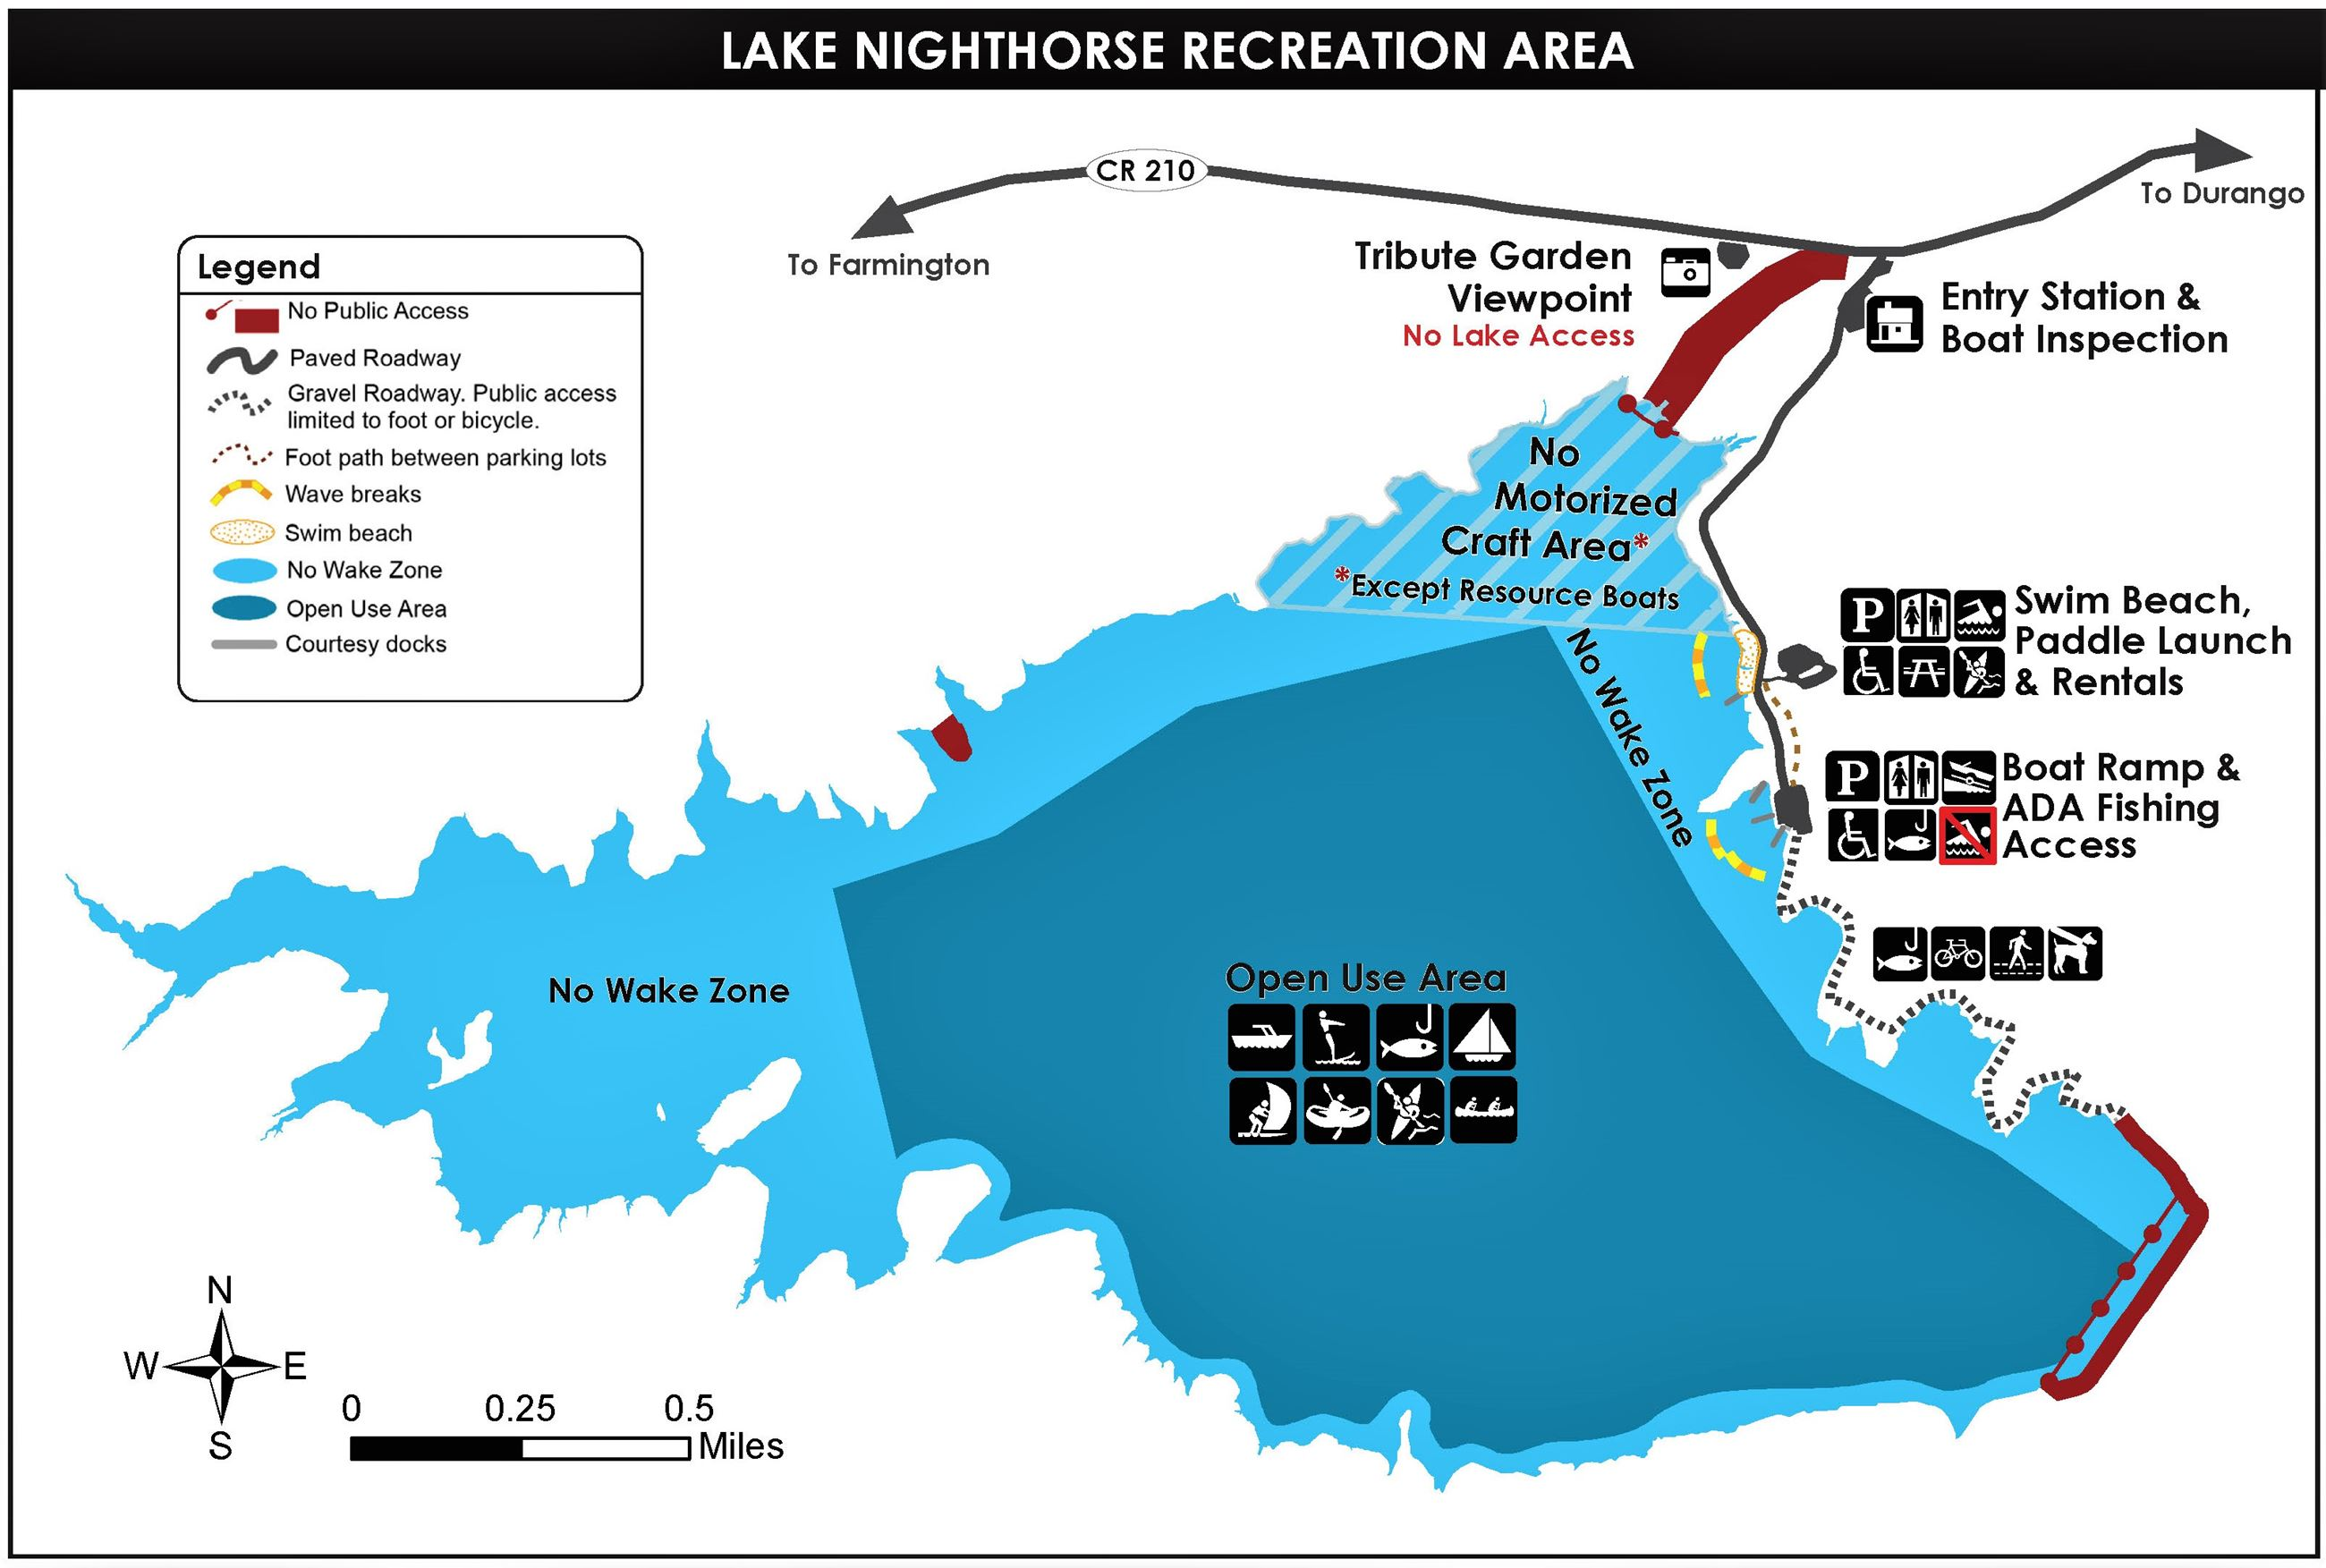 Lake Nighthorse 2021 Brochure MAP 3 16 2021